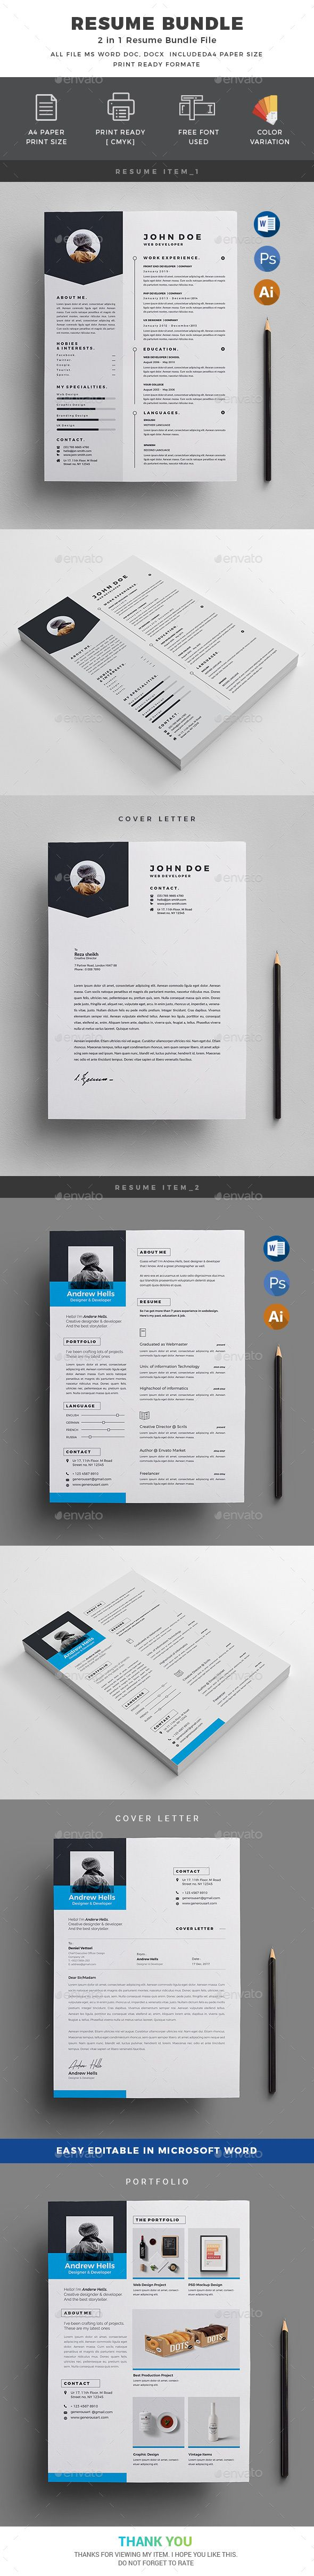 Resume Bundle2 in 1 24 best Resume